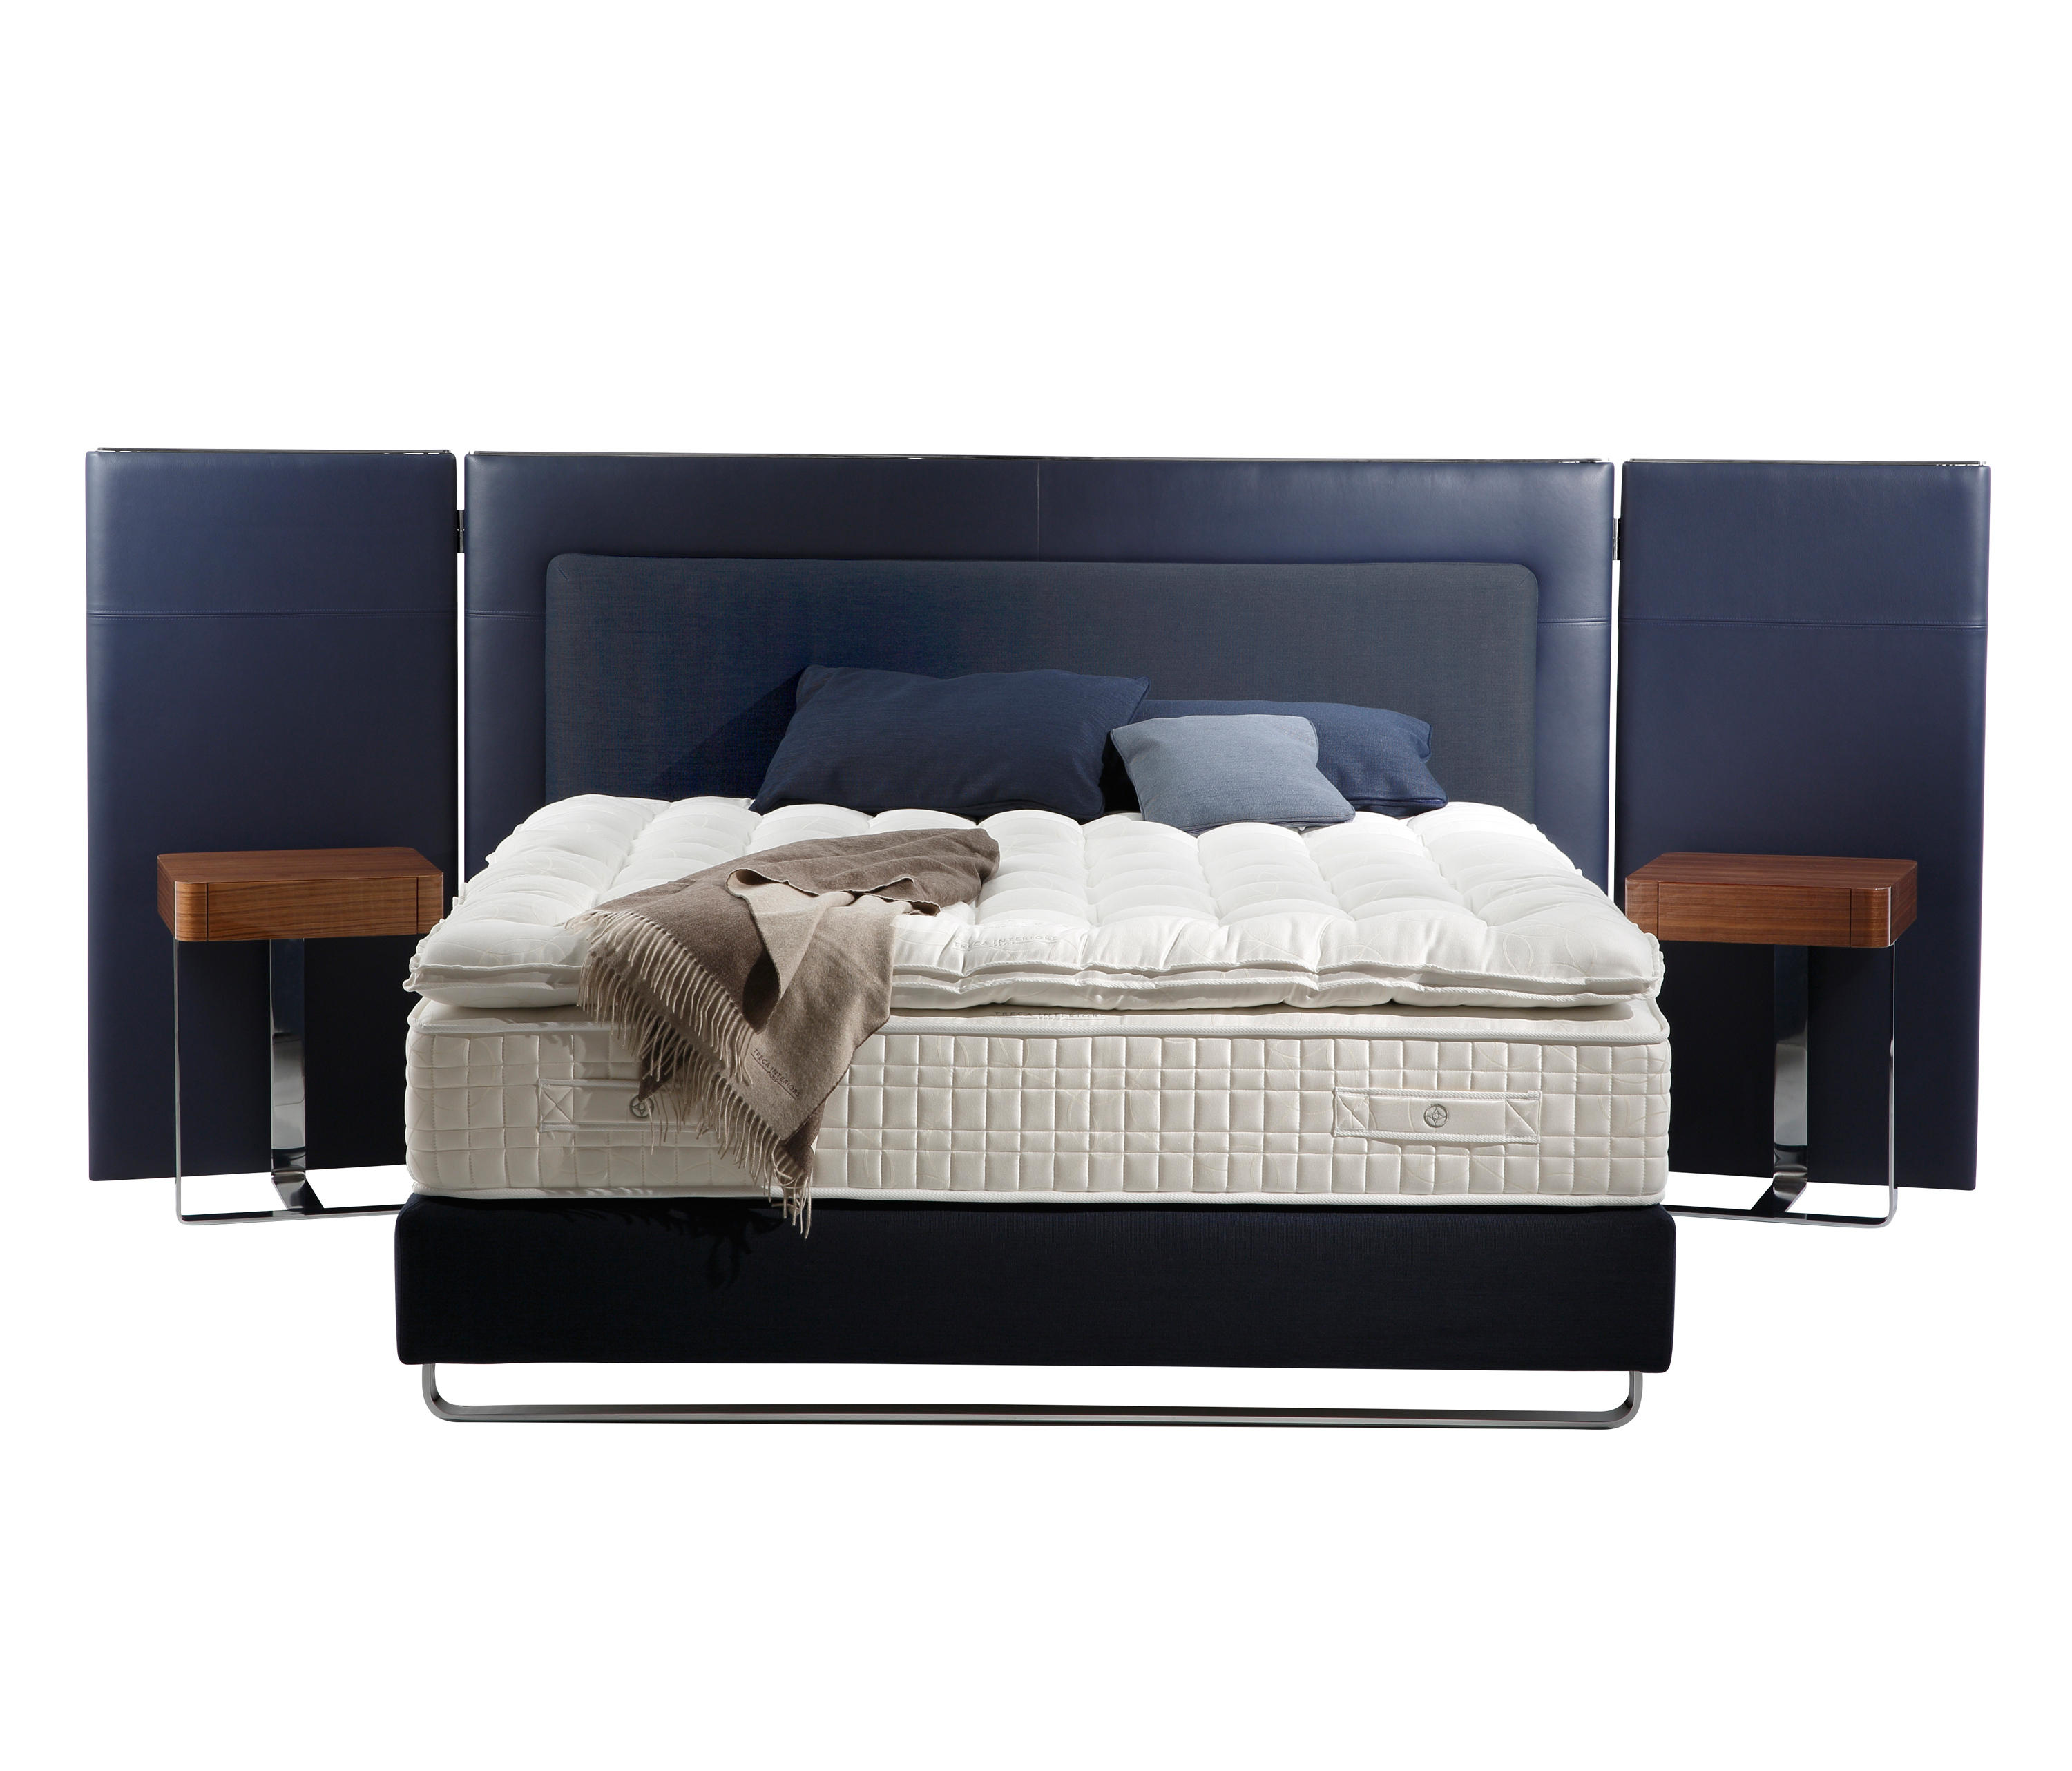 Bed Headboard Sleeping Systems Collection Platinum Headboard Escale Bed